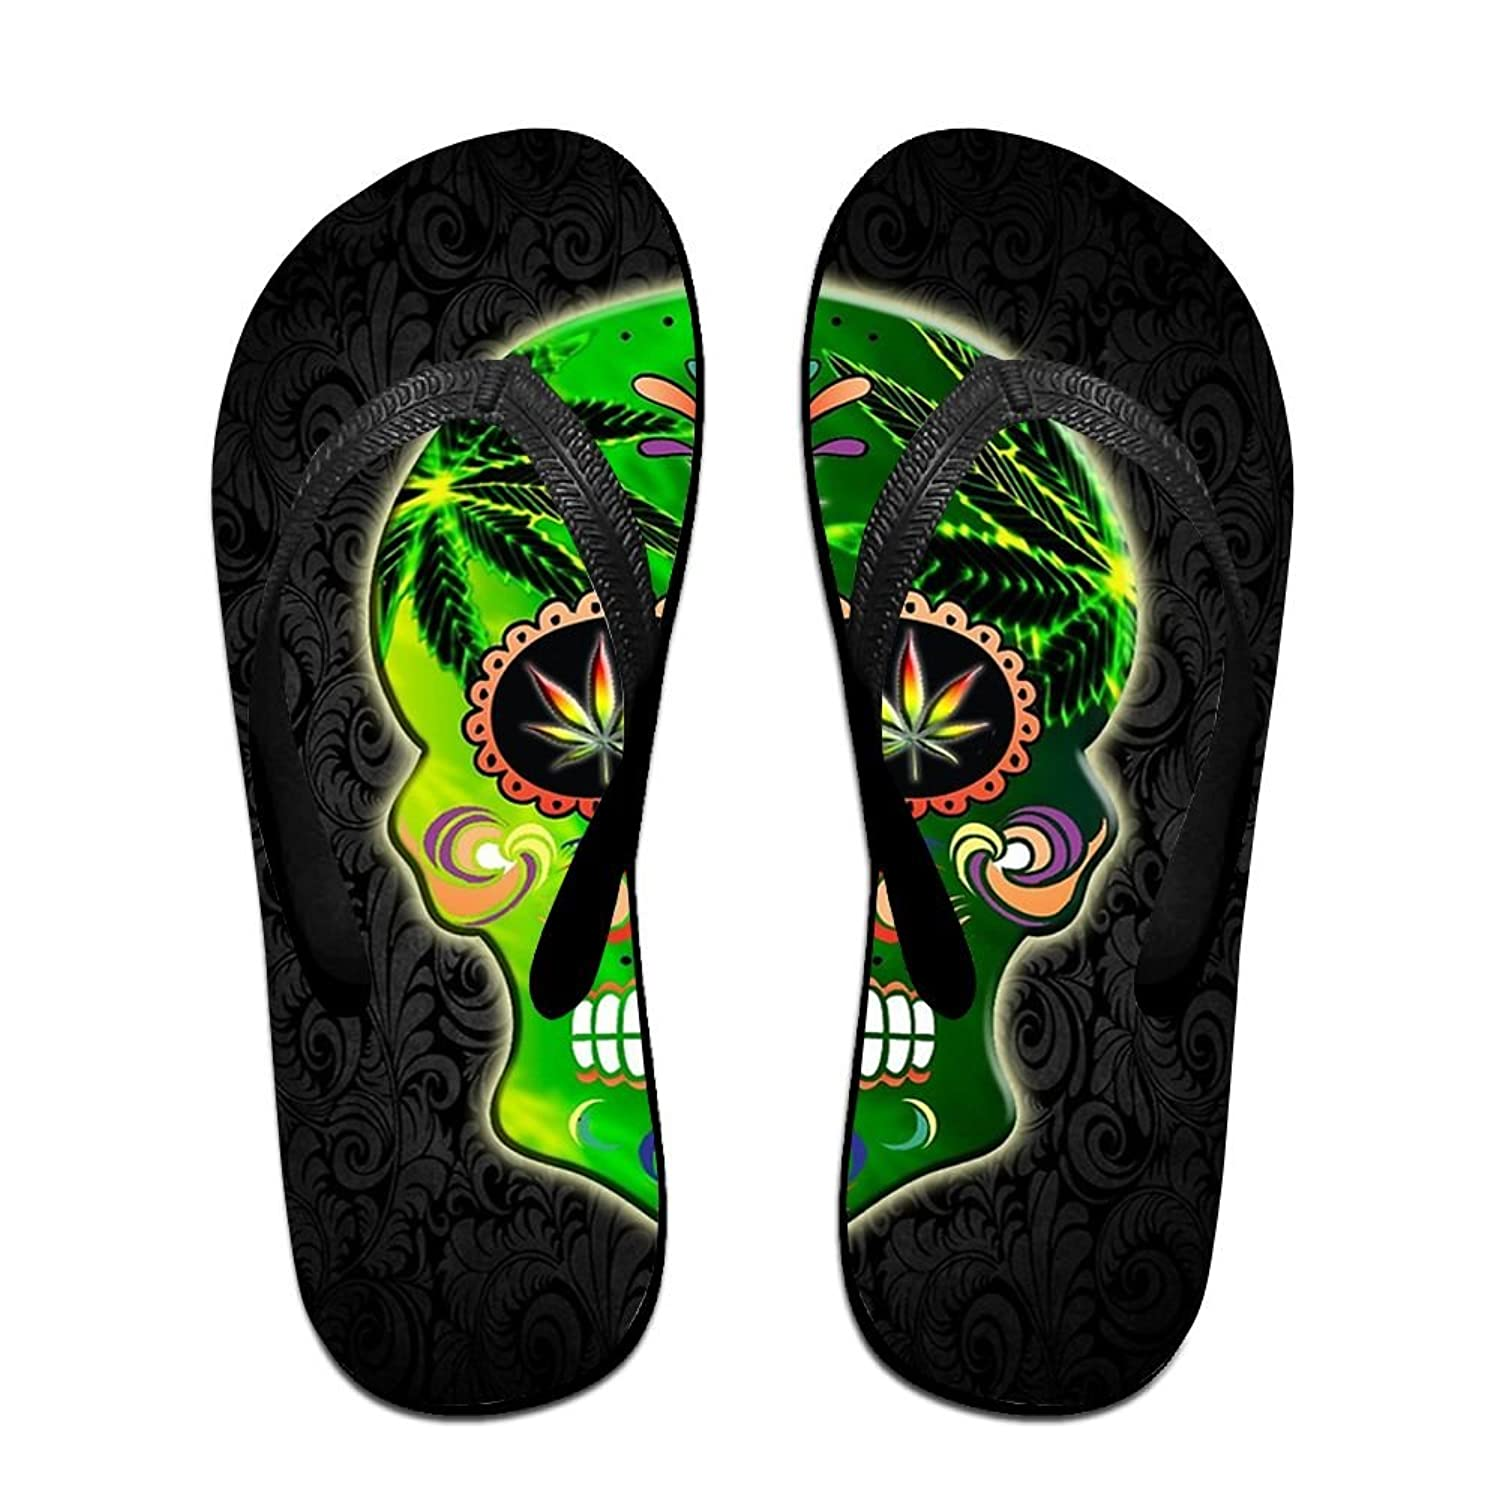 c1fa84d3160a2 Floral Weed Skull Unisex Summer Casual Flip Flop Beach Slippers Flat Sandals